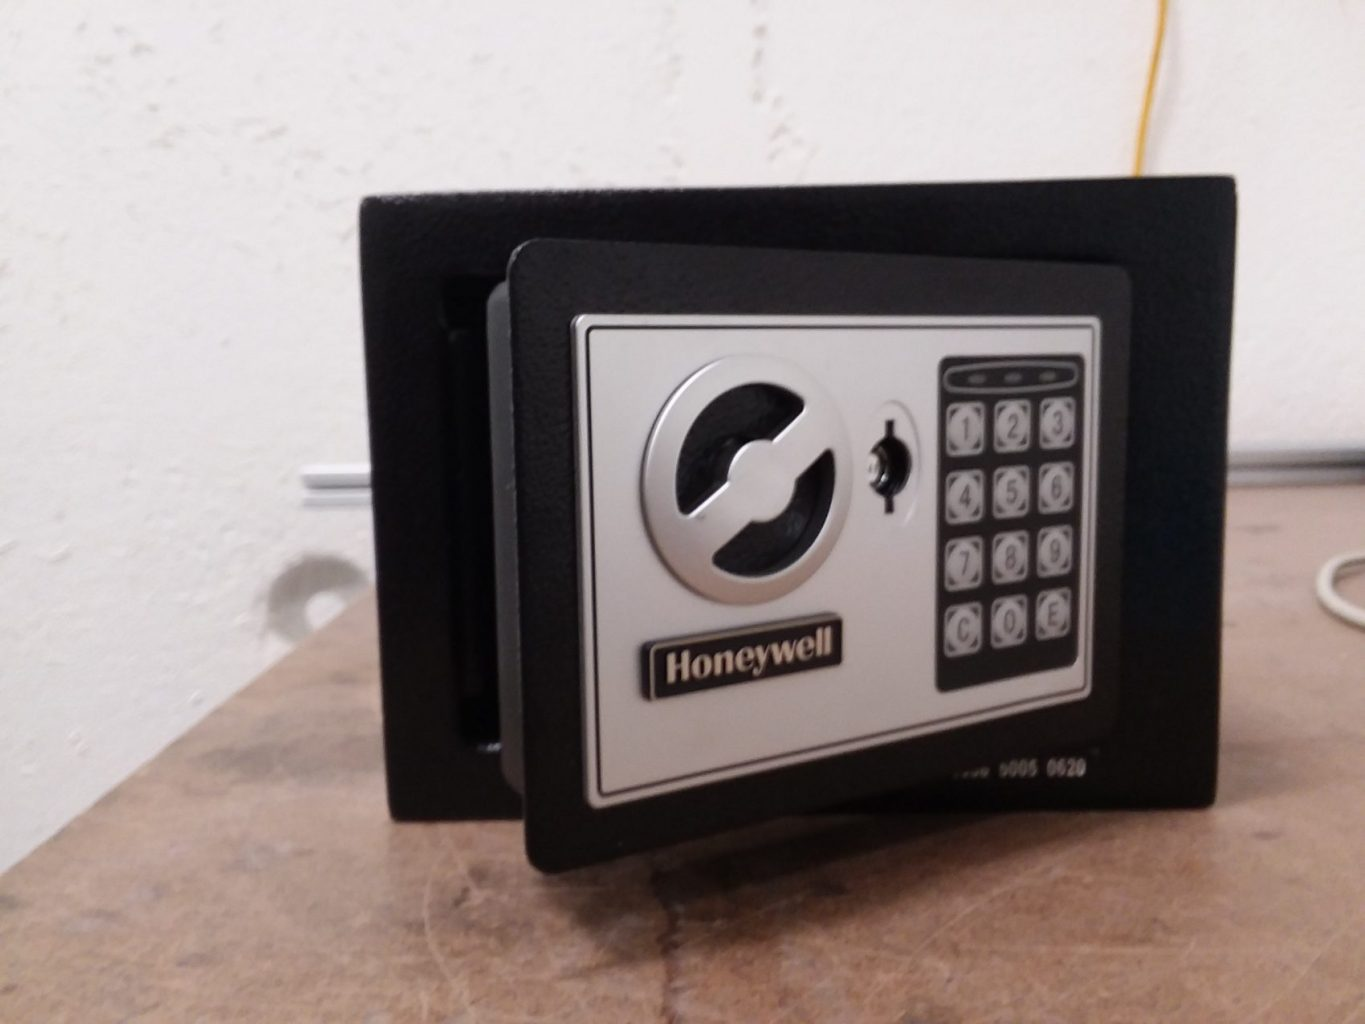 A Honeywell safe used to test neutron and X-ray imaging